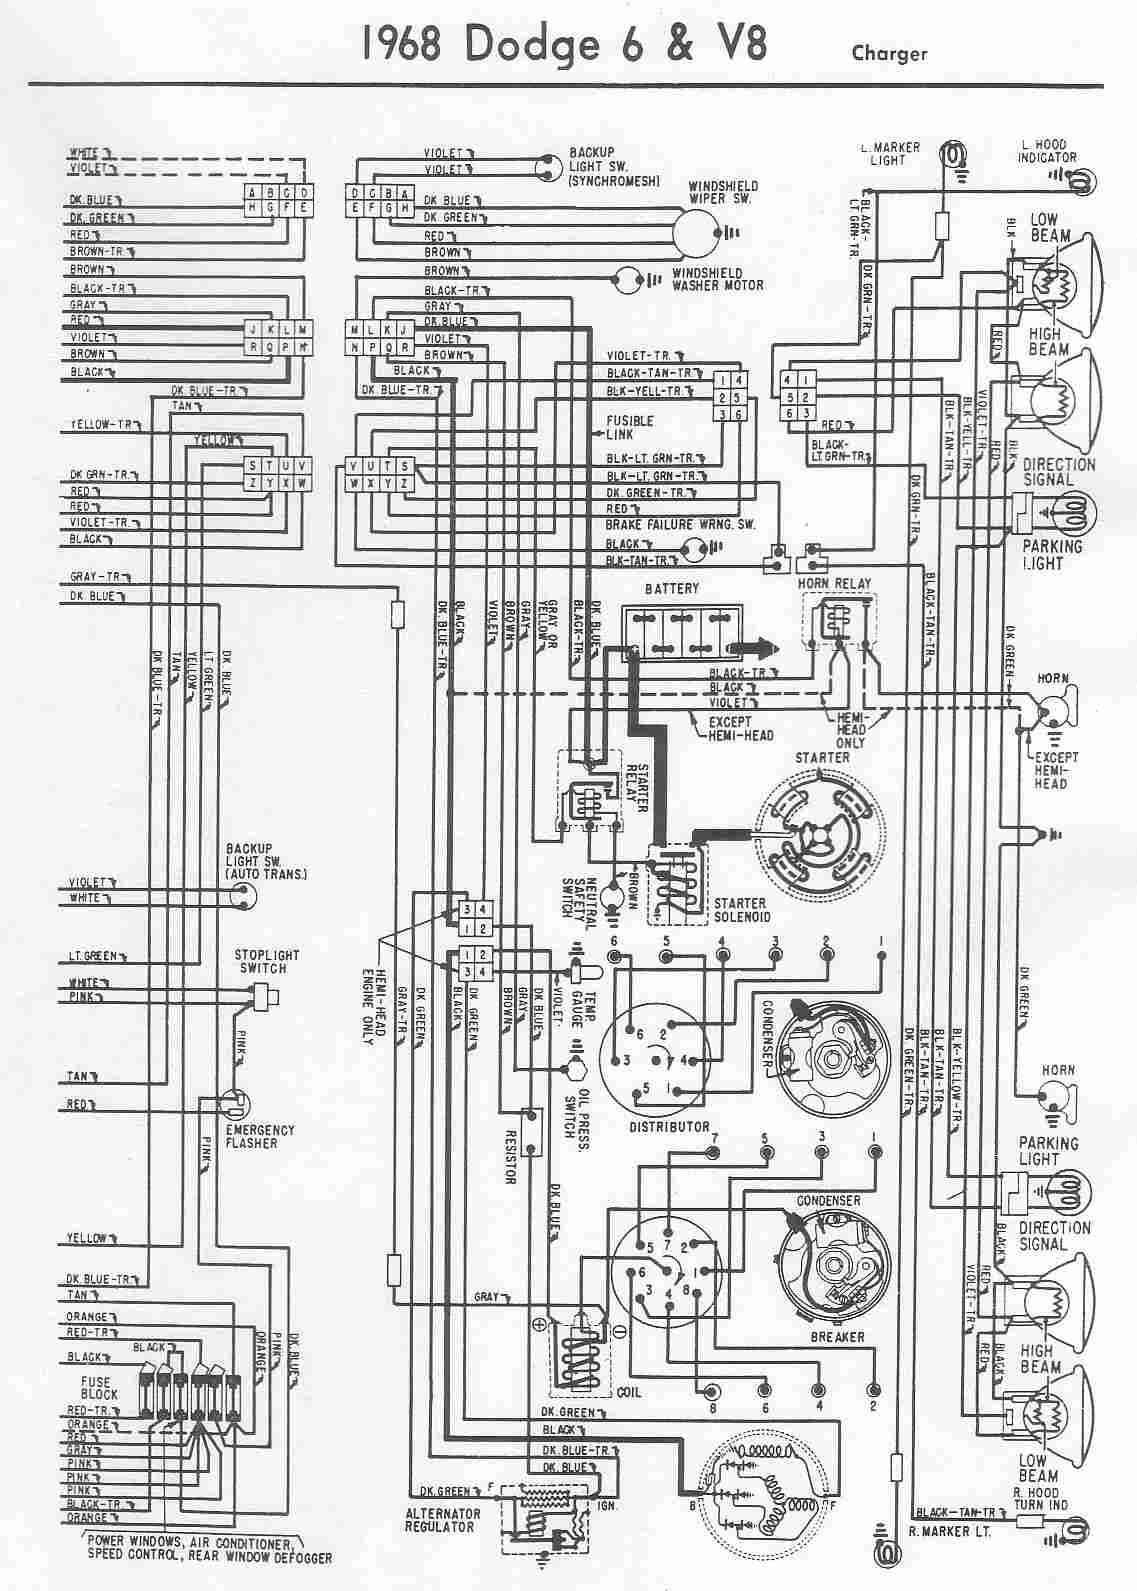 Dodge Car Manuals Wiring Diagrams Pdf Fault Codes 97 Nissan Pickup Starter Diagram Download